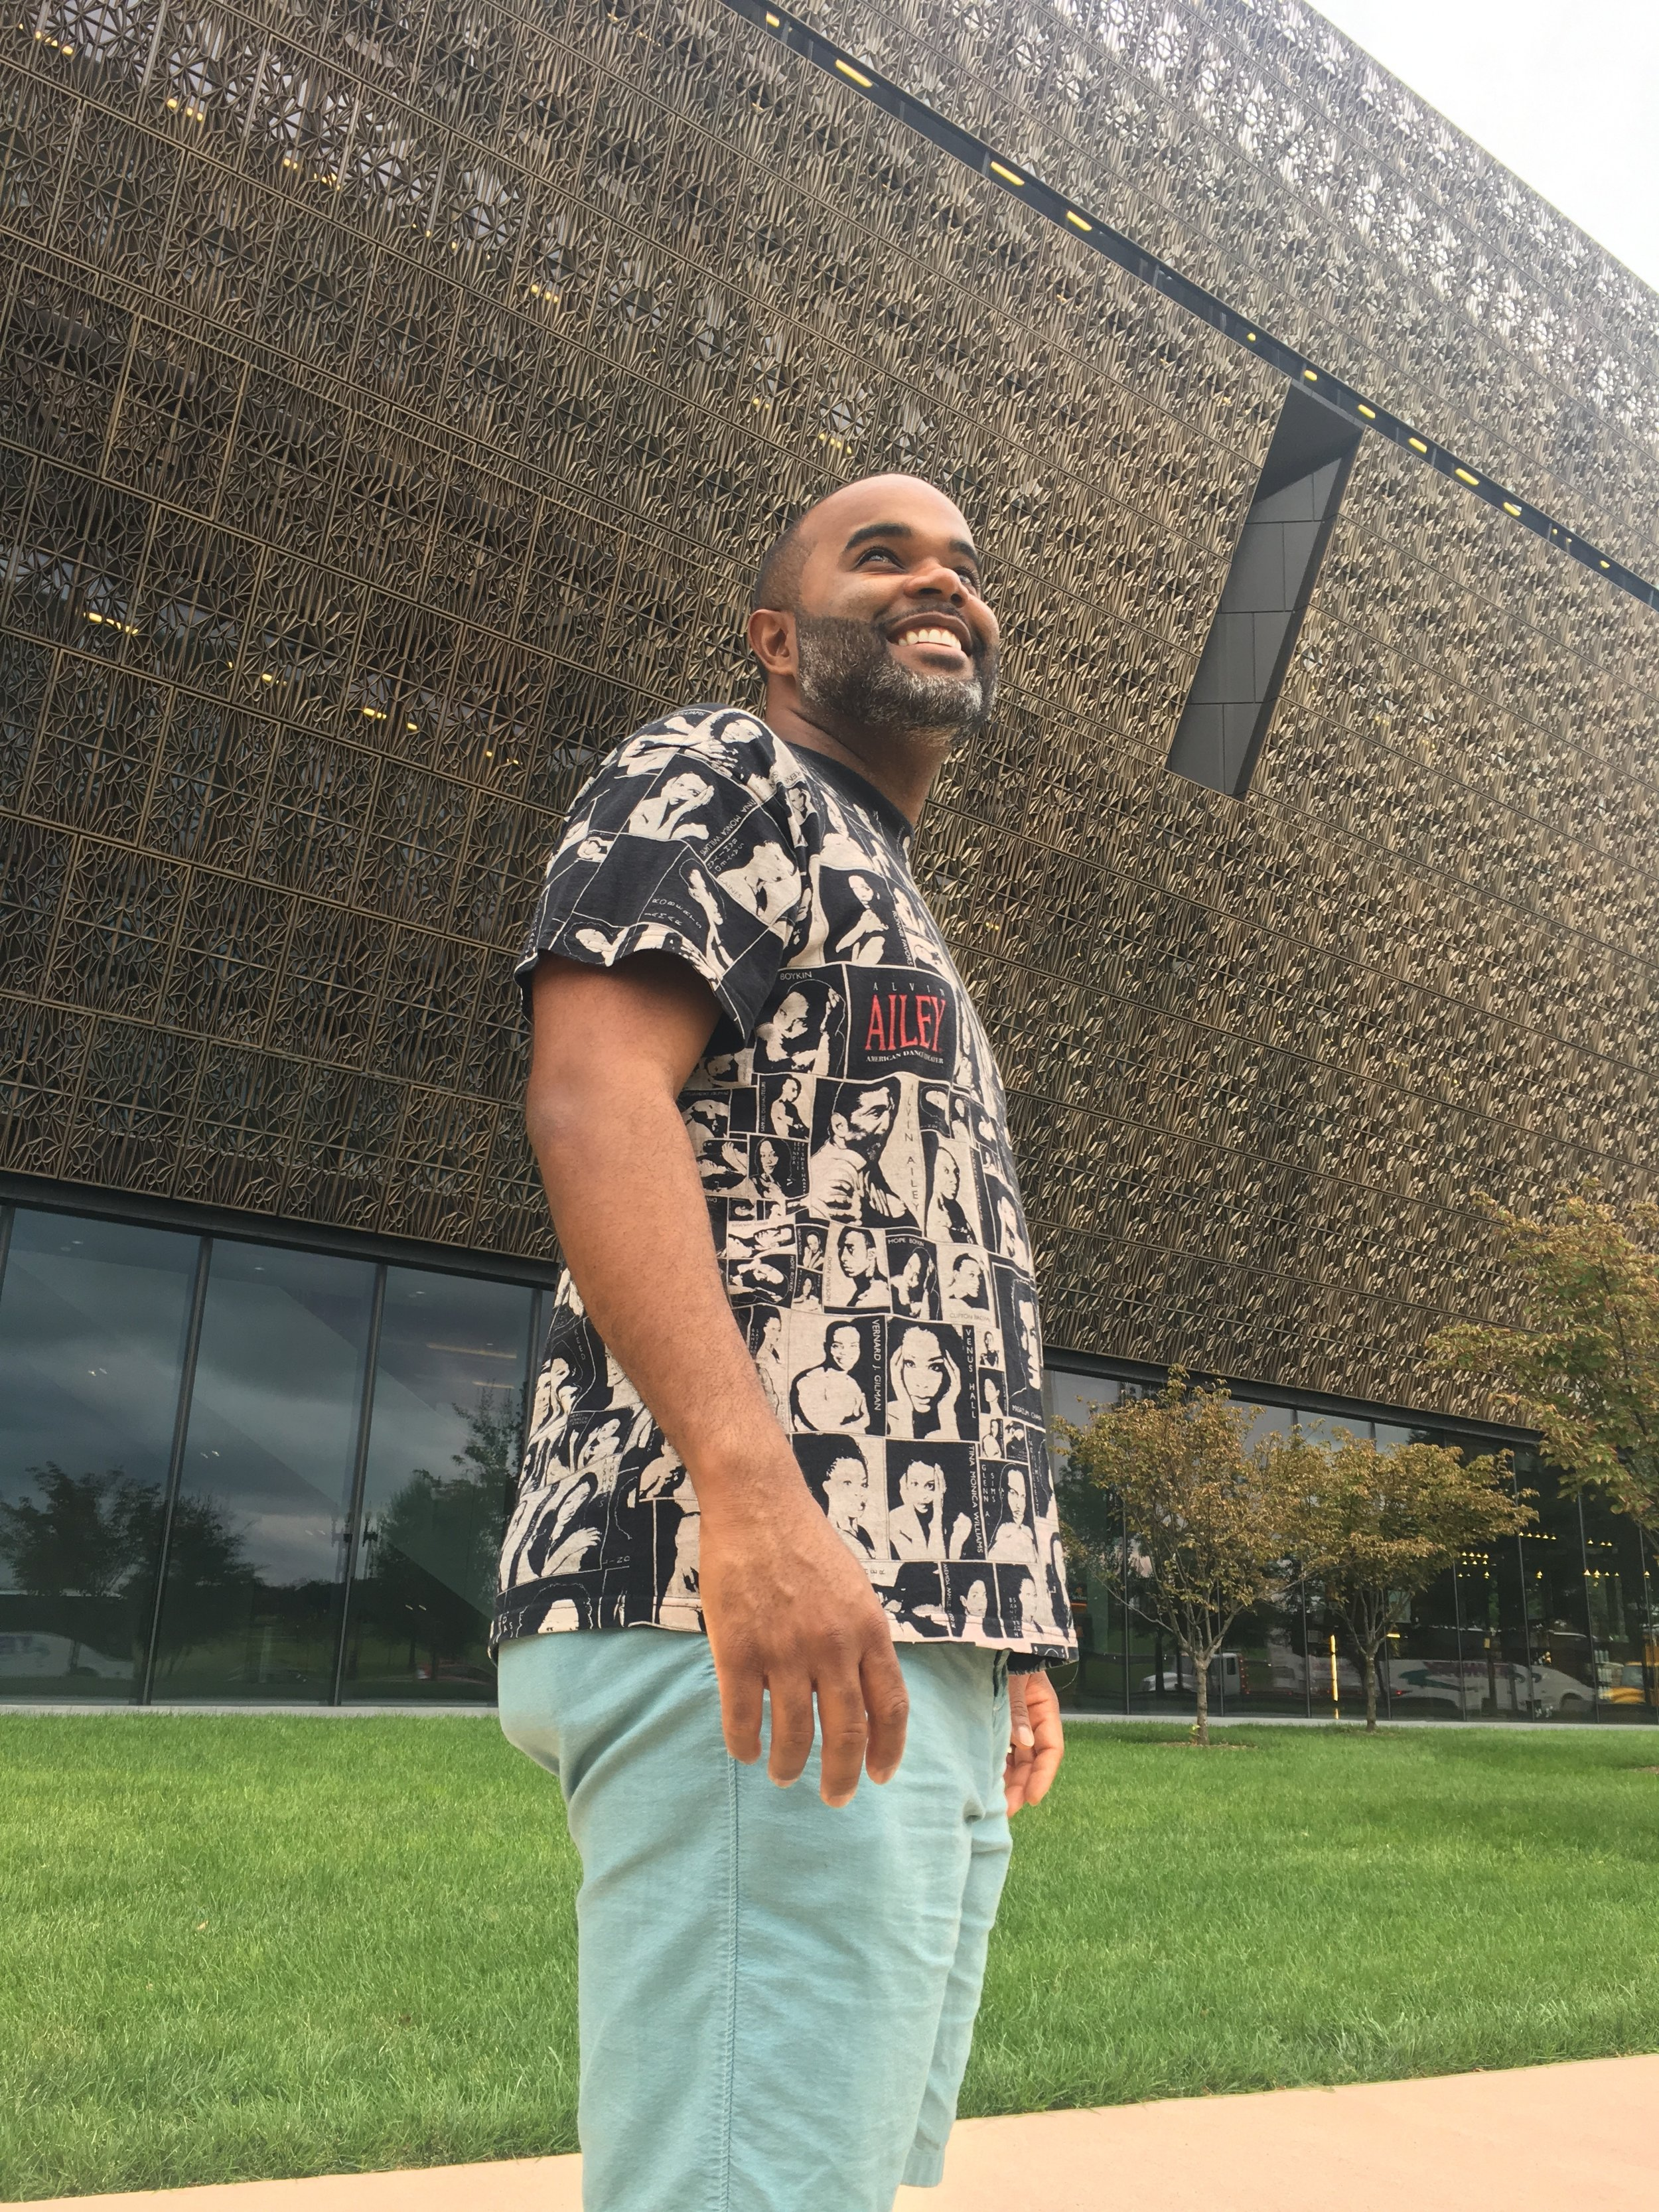 In August, I took a stroll past the National Museum of African-American History & Culture in DC. It was one of the places we visited with our Young Leaders Group during our spring 2017 Power Trip. I am grateful for the gift of looking to the future with hope knowing that we have persevered through such a gory and glorious past.